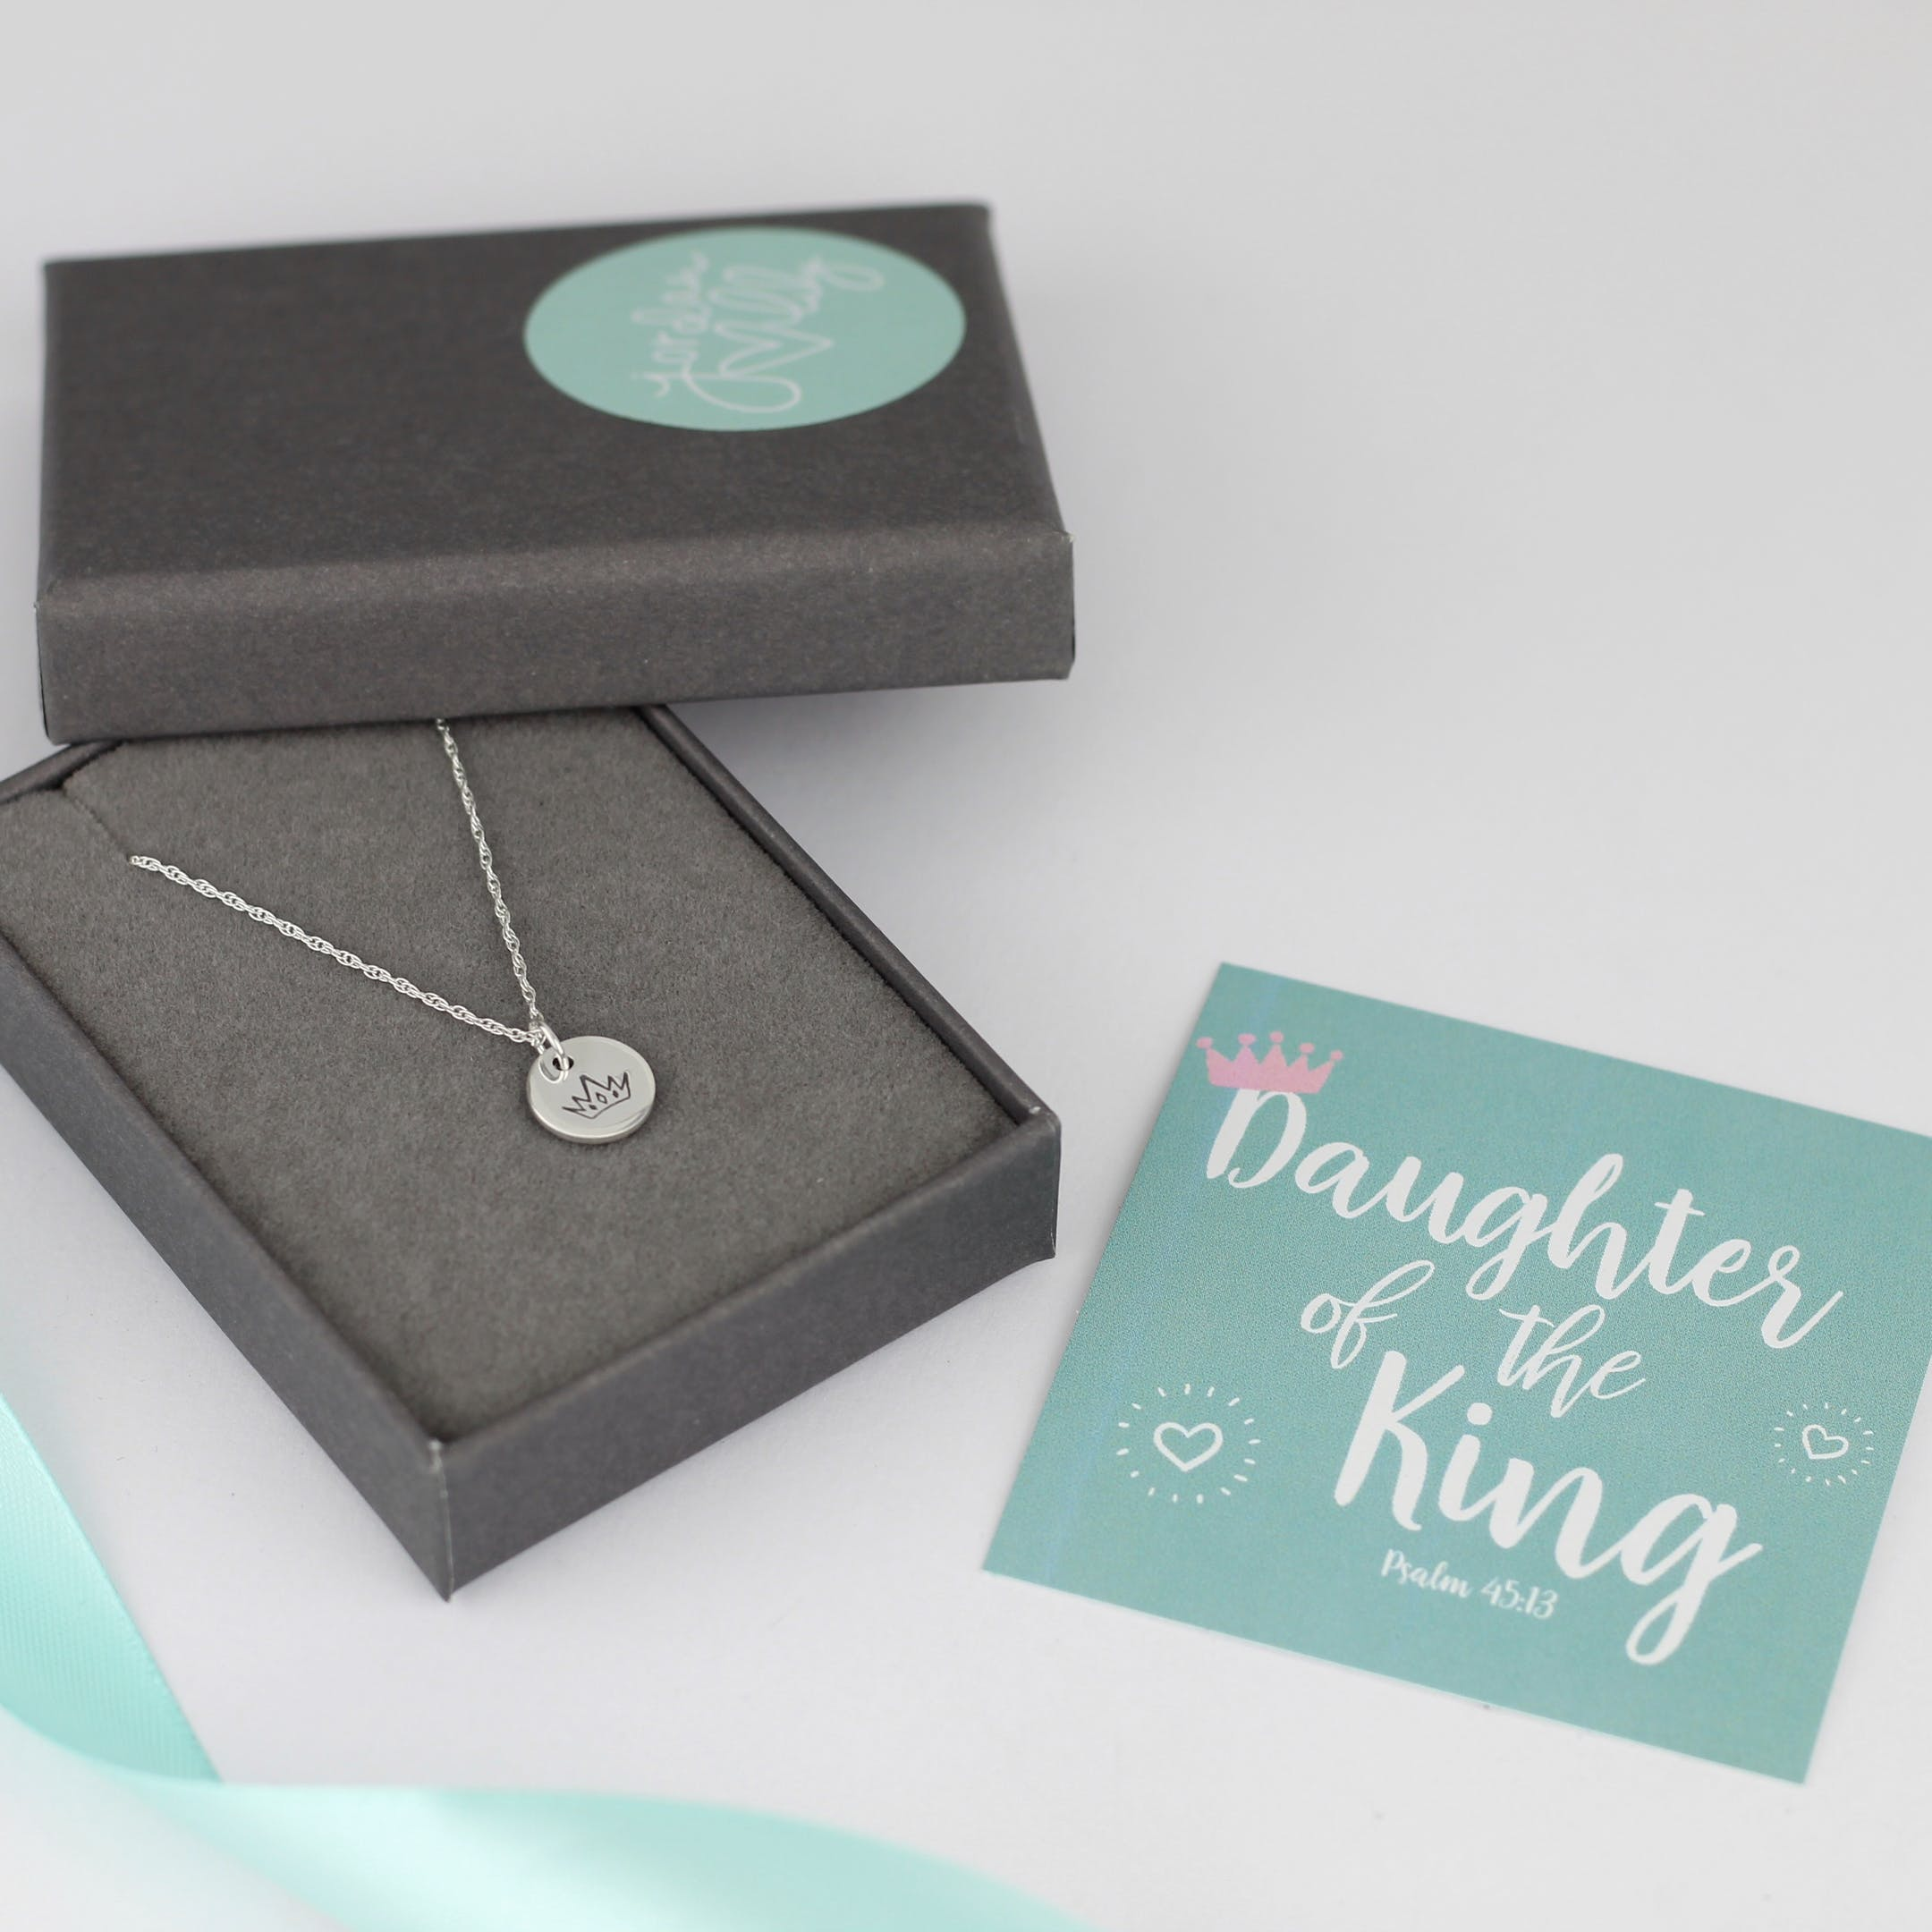 Grey box holding silver necklace with silver disc pendant stamped with crown and a teal card saying Daughter of the King by Jordan Lily Designs